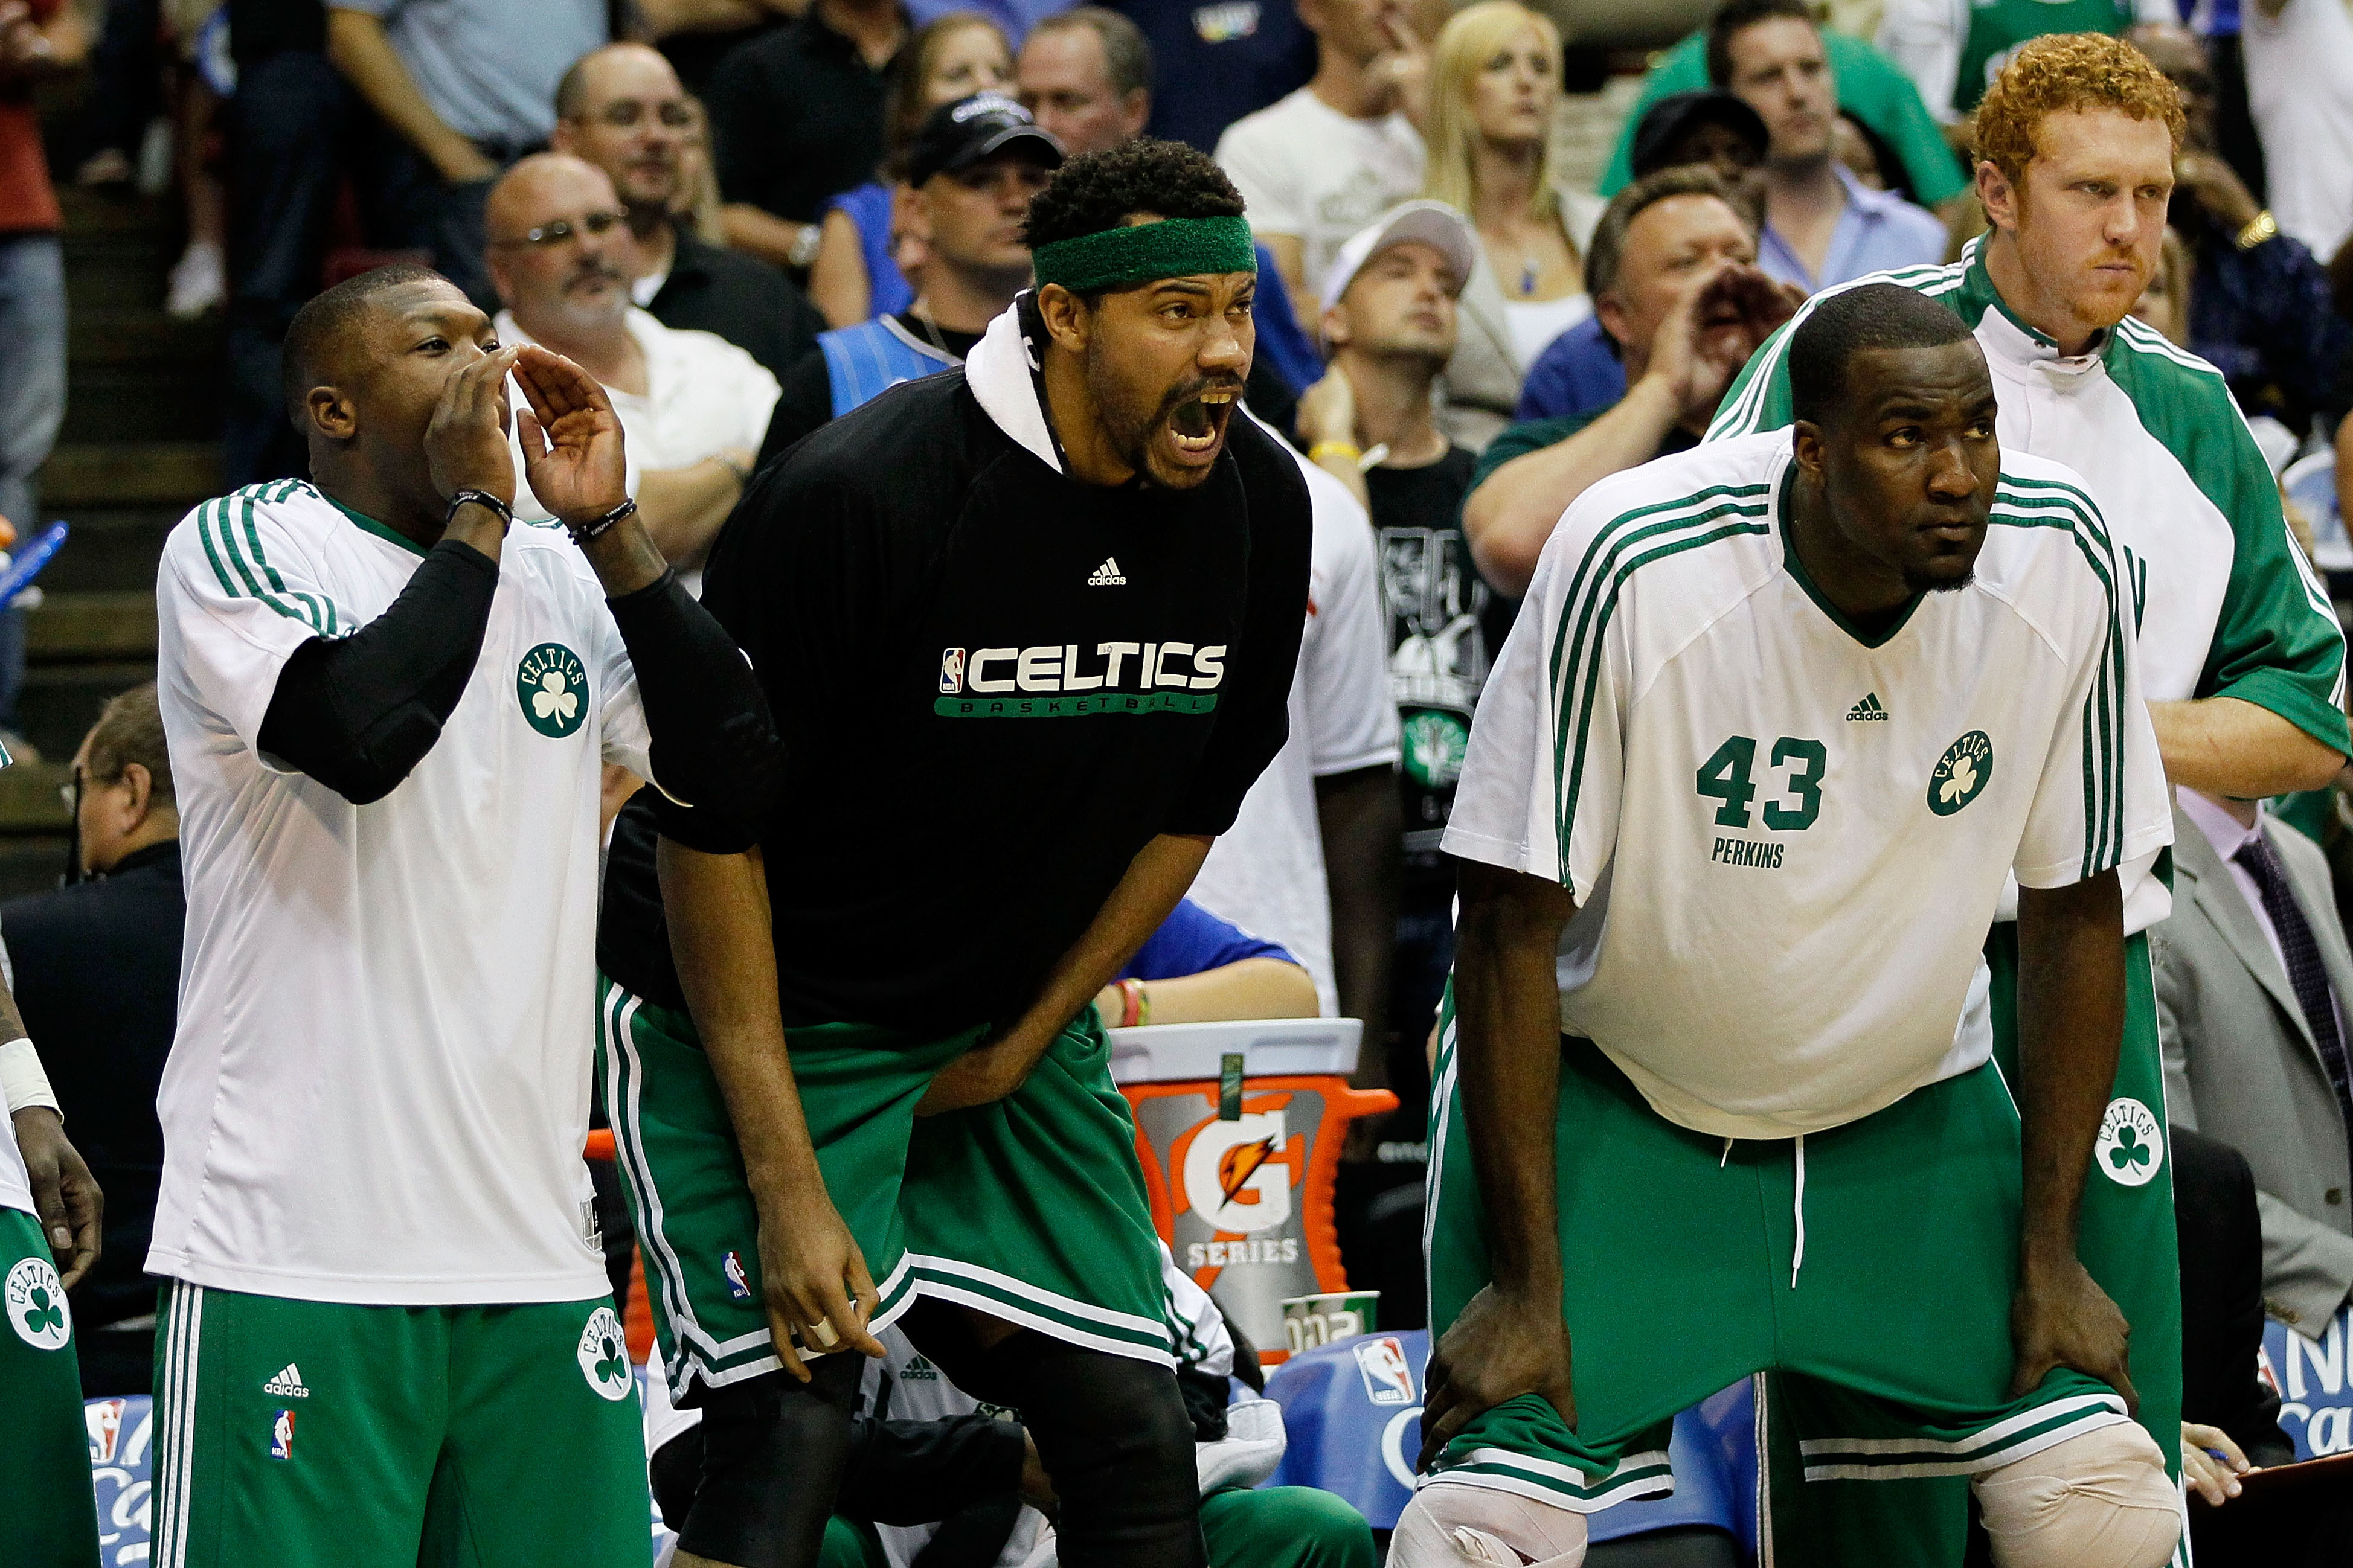 ORLANDO, FL - MAY 18:  (L-R) Nate Robinson #4, Rasheed Wallace #30 and Kendrick Perkins #43 of the Boston Celtics cheer on their teammates from the bench against the Orlando Magic in Game Two of the Eastern Conference Finals during the 2010 NBA Playoffs a